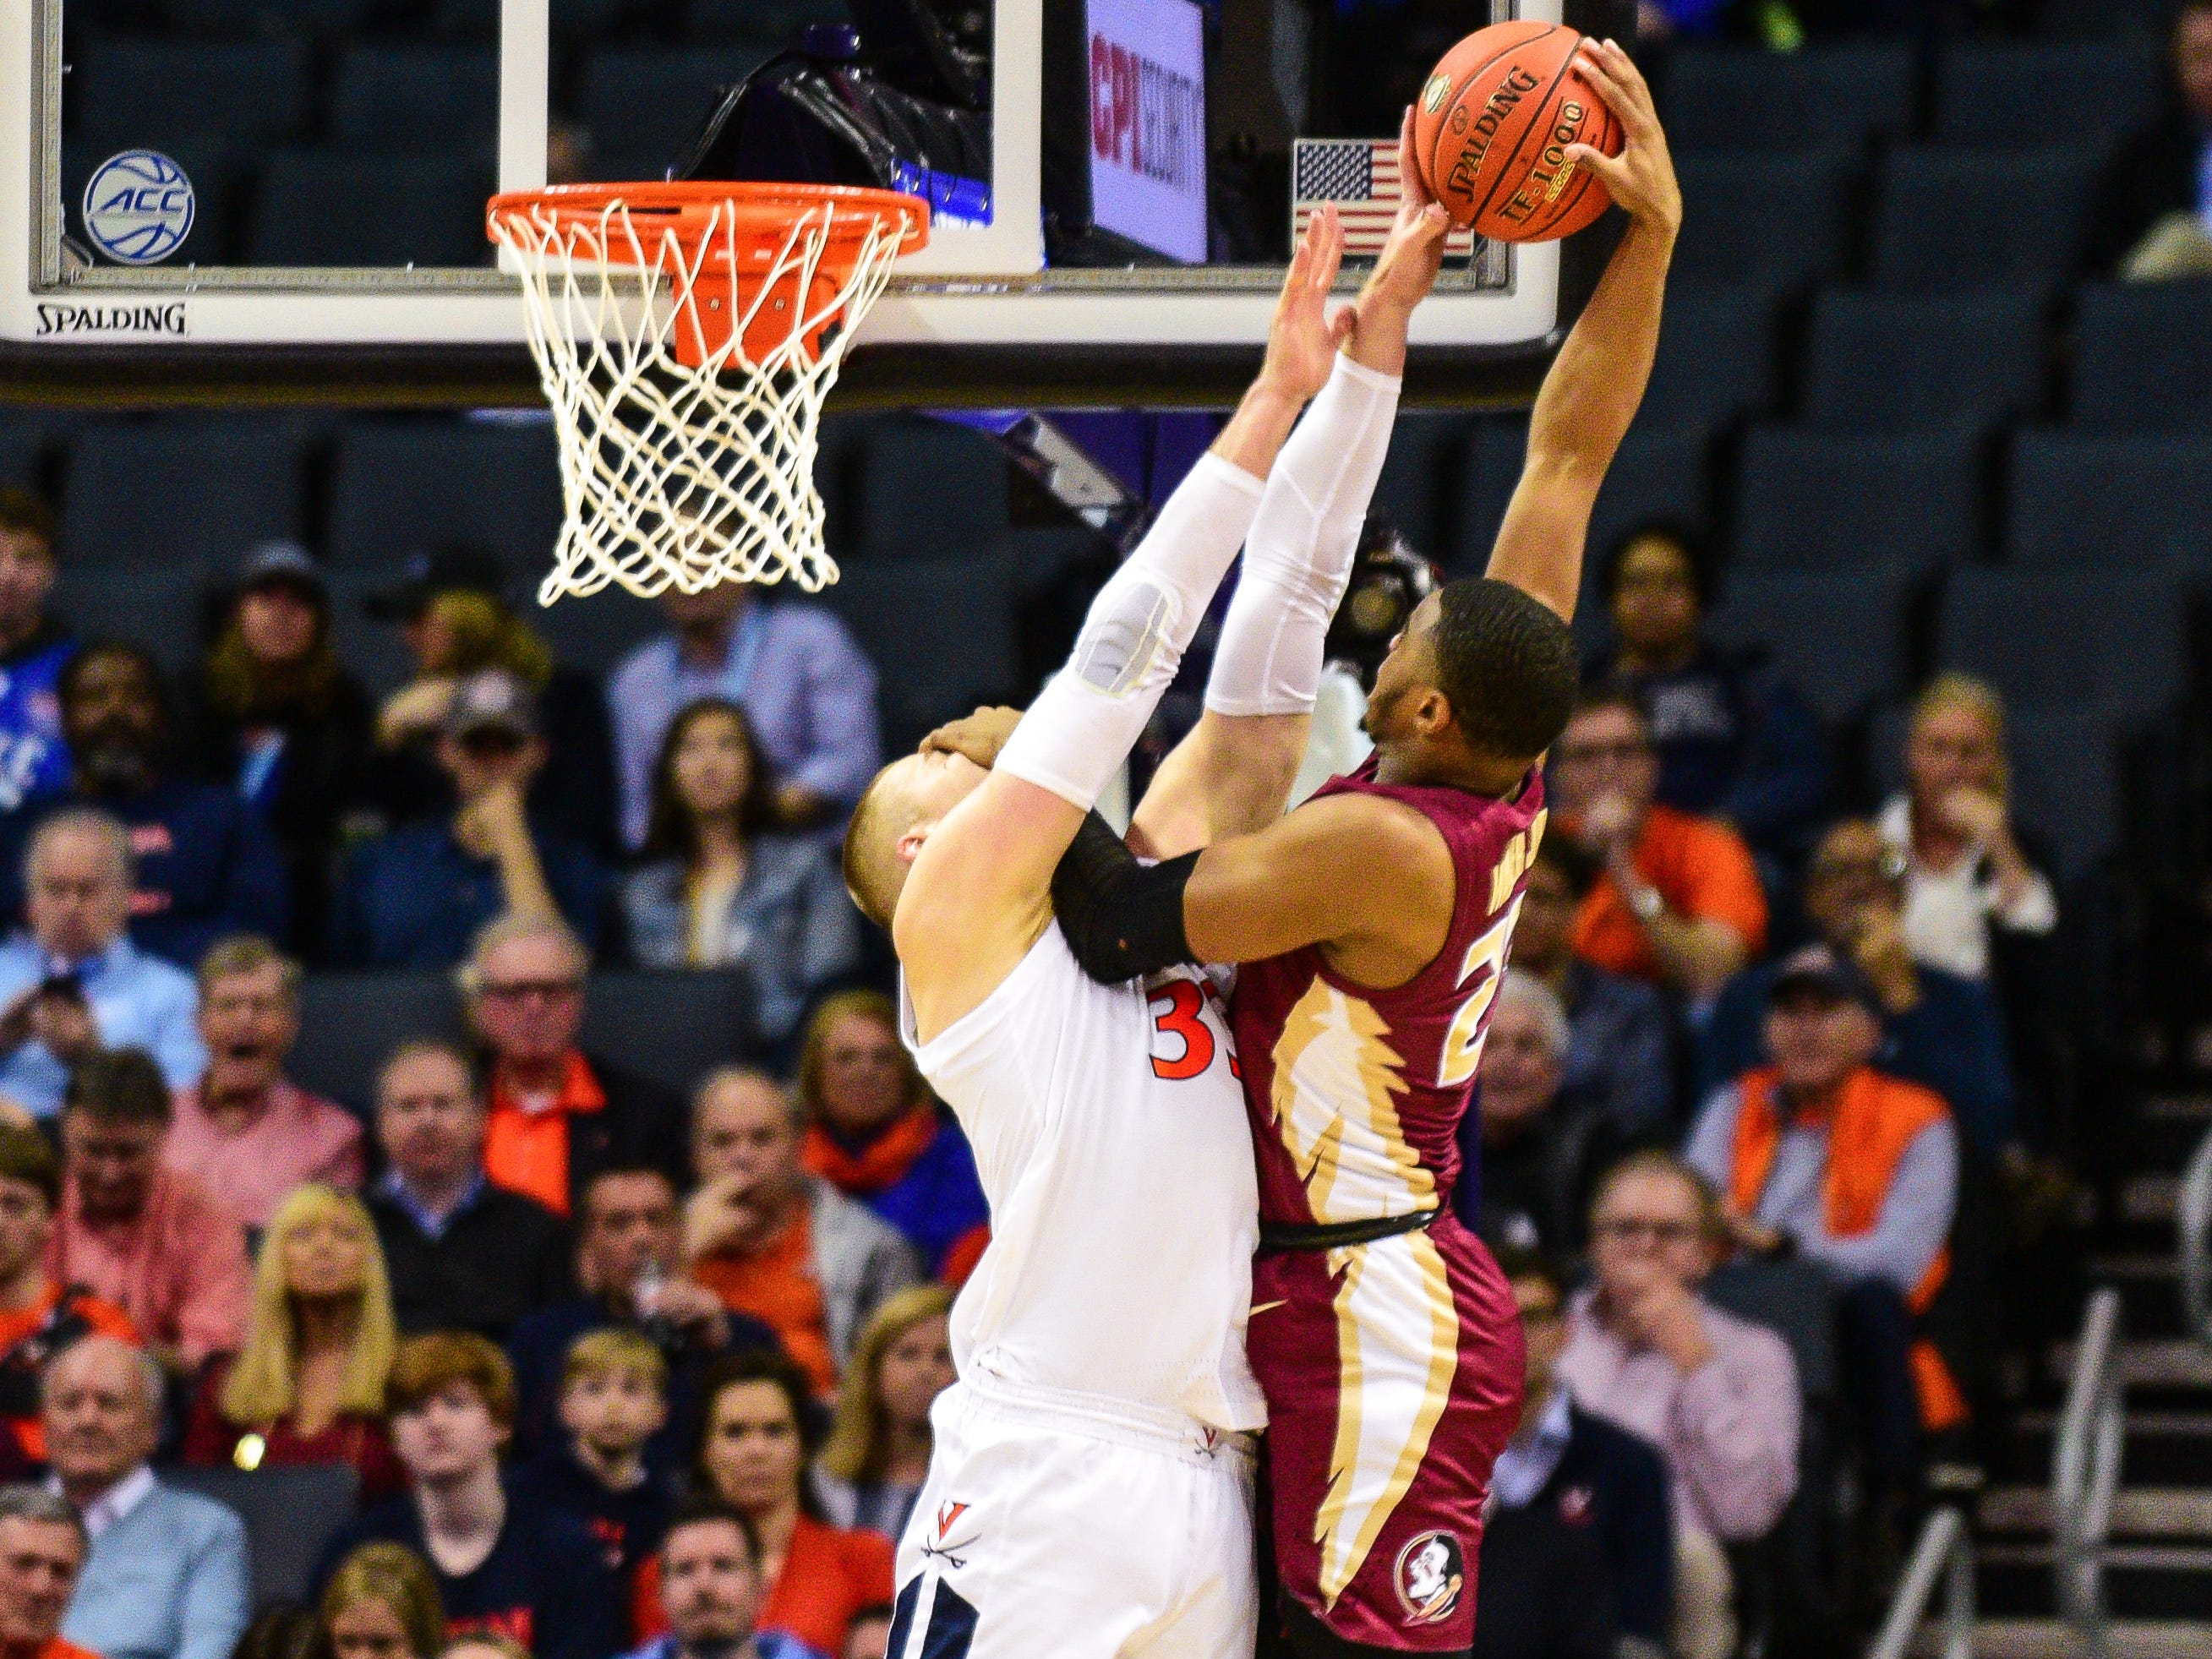 Florida State sophomore guard M.J. Walker attempts to dunk but is fouled by Virginia redshirt senior center Jack Salt during the first half of the ACC Tournament Semifinals at the Spectrum Center in Charlotte on Friday.